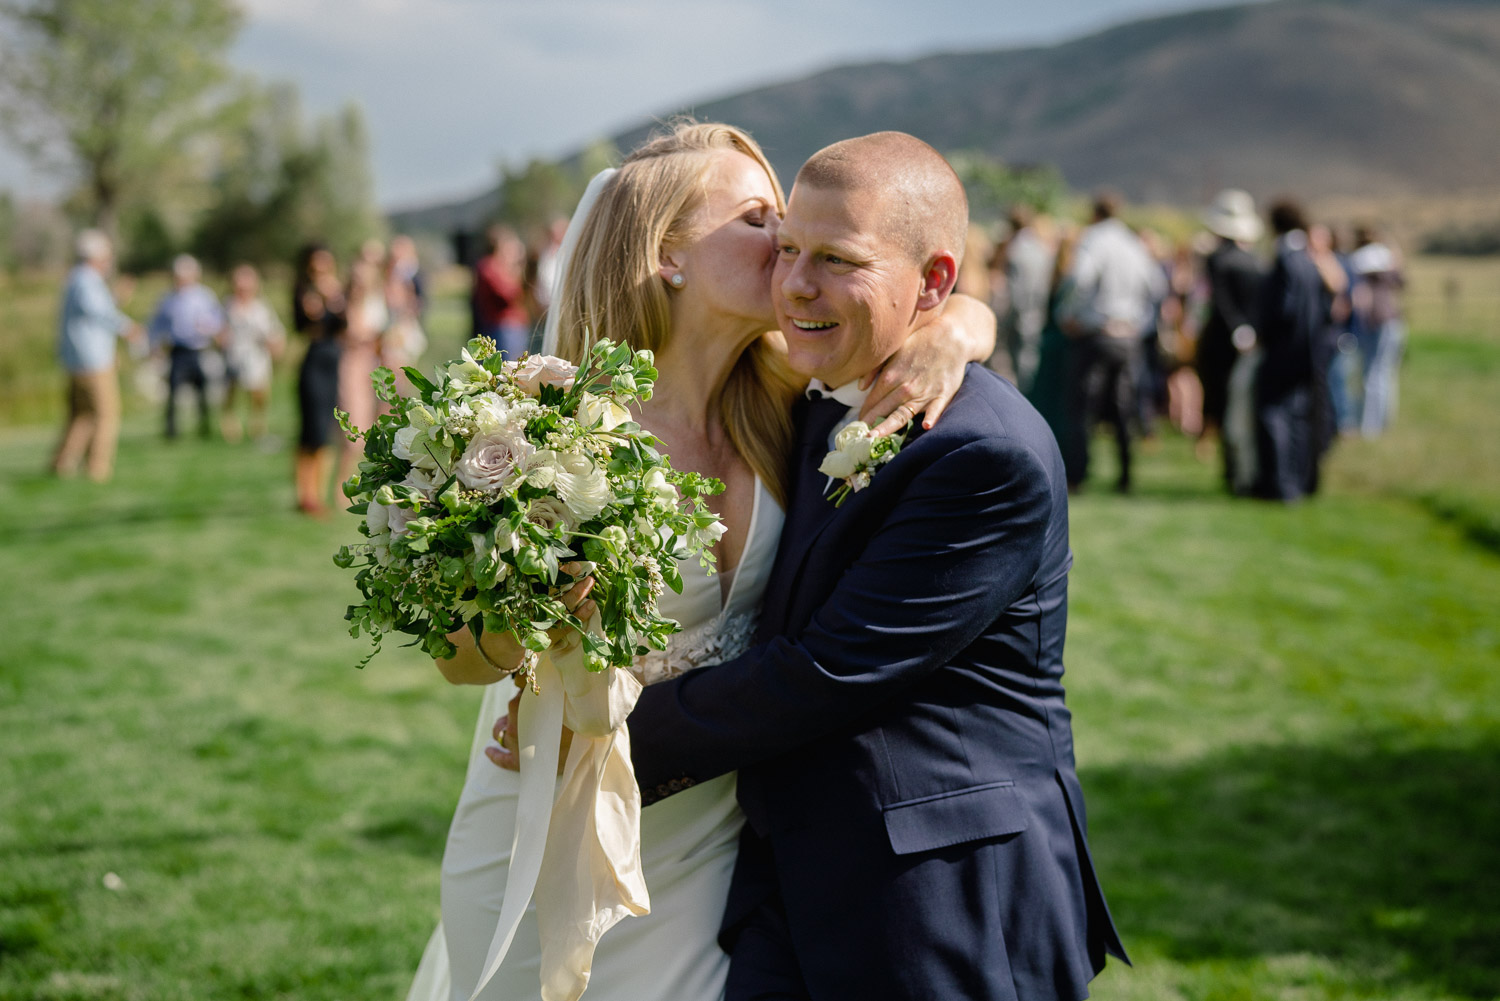 bride kissing groom on cheek guests in background park city wedding